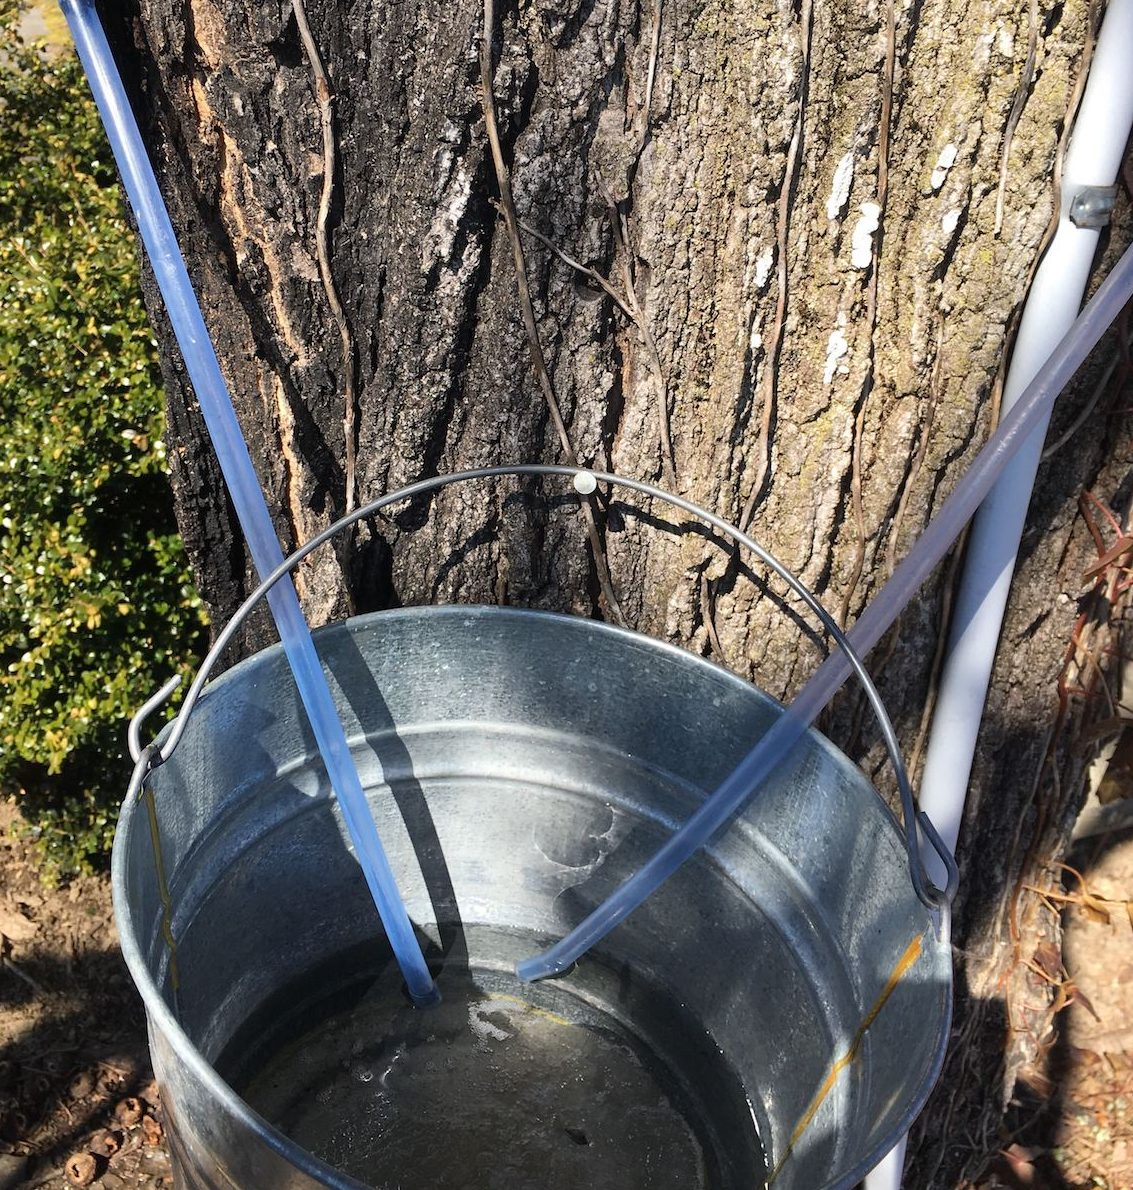 a bucket of what looks to clear water (it's the sap) attached to a tree. two tubes collecting the sap hang from the tree